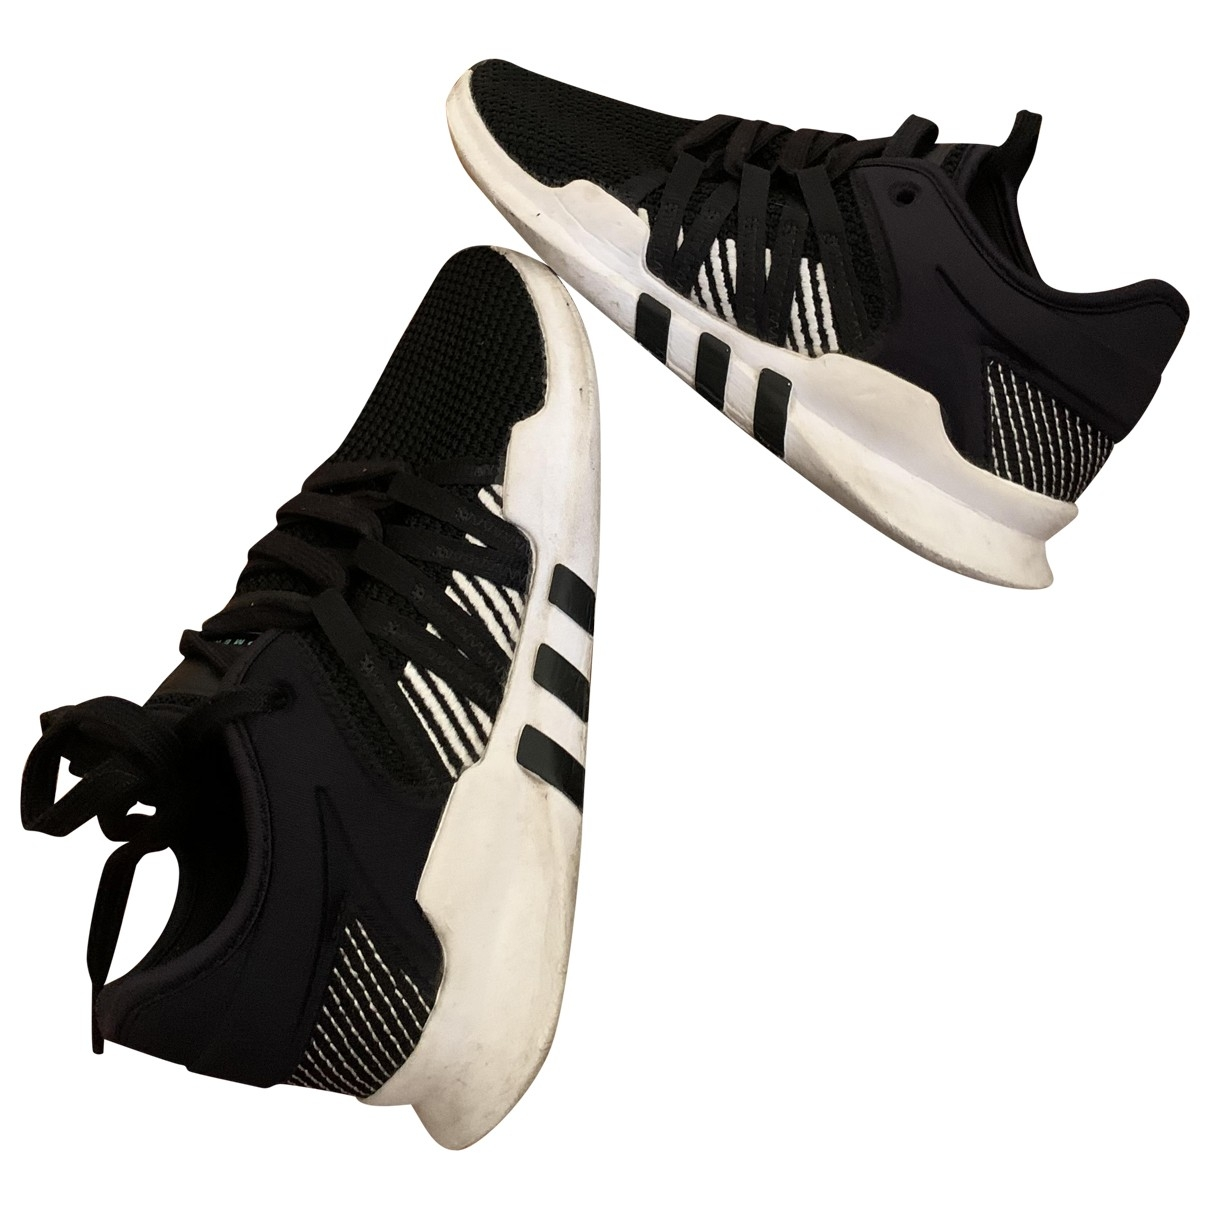 Adidas EQT Support Black Cloth Trainers for Women 6 US